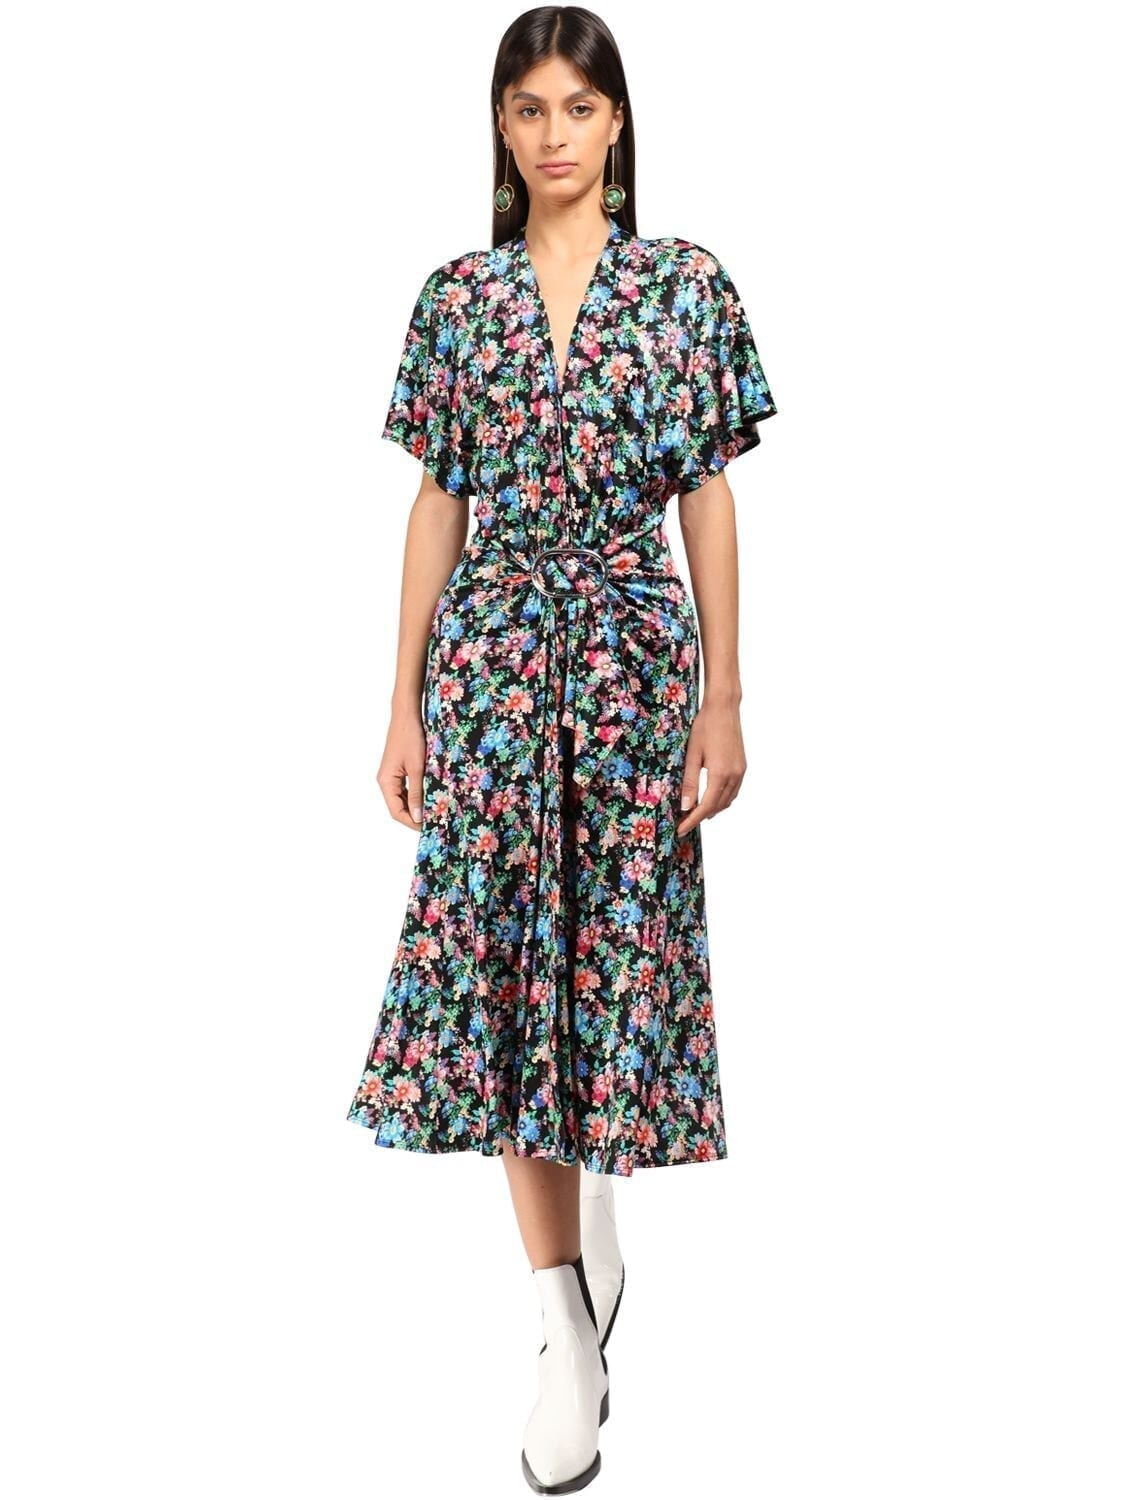 PACO RABANNE Flower Print Viscose Jersey Midi Dress